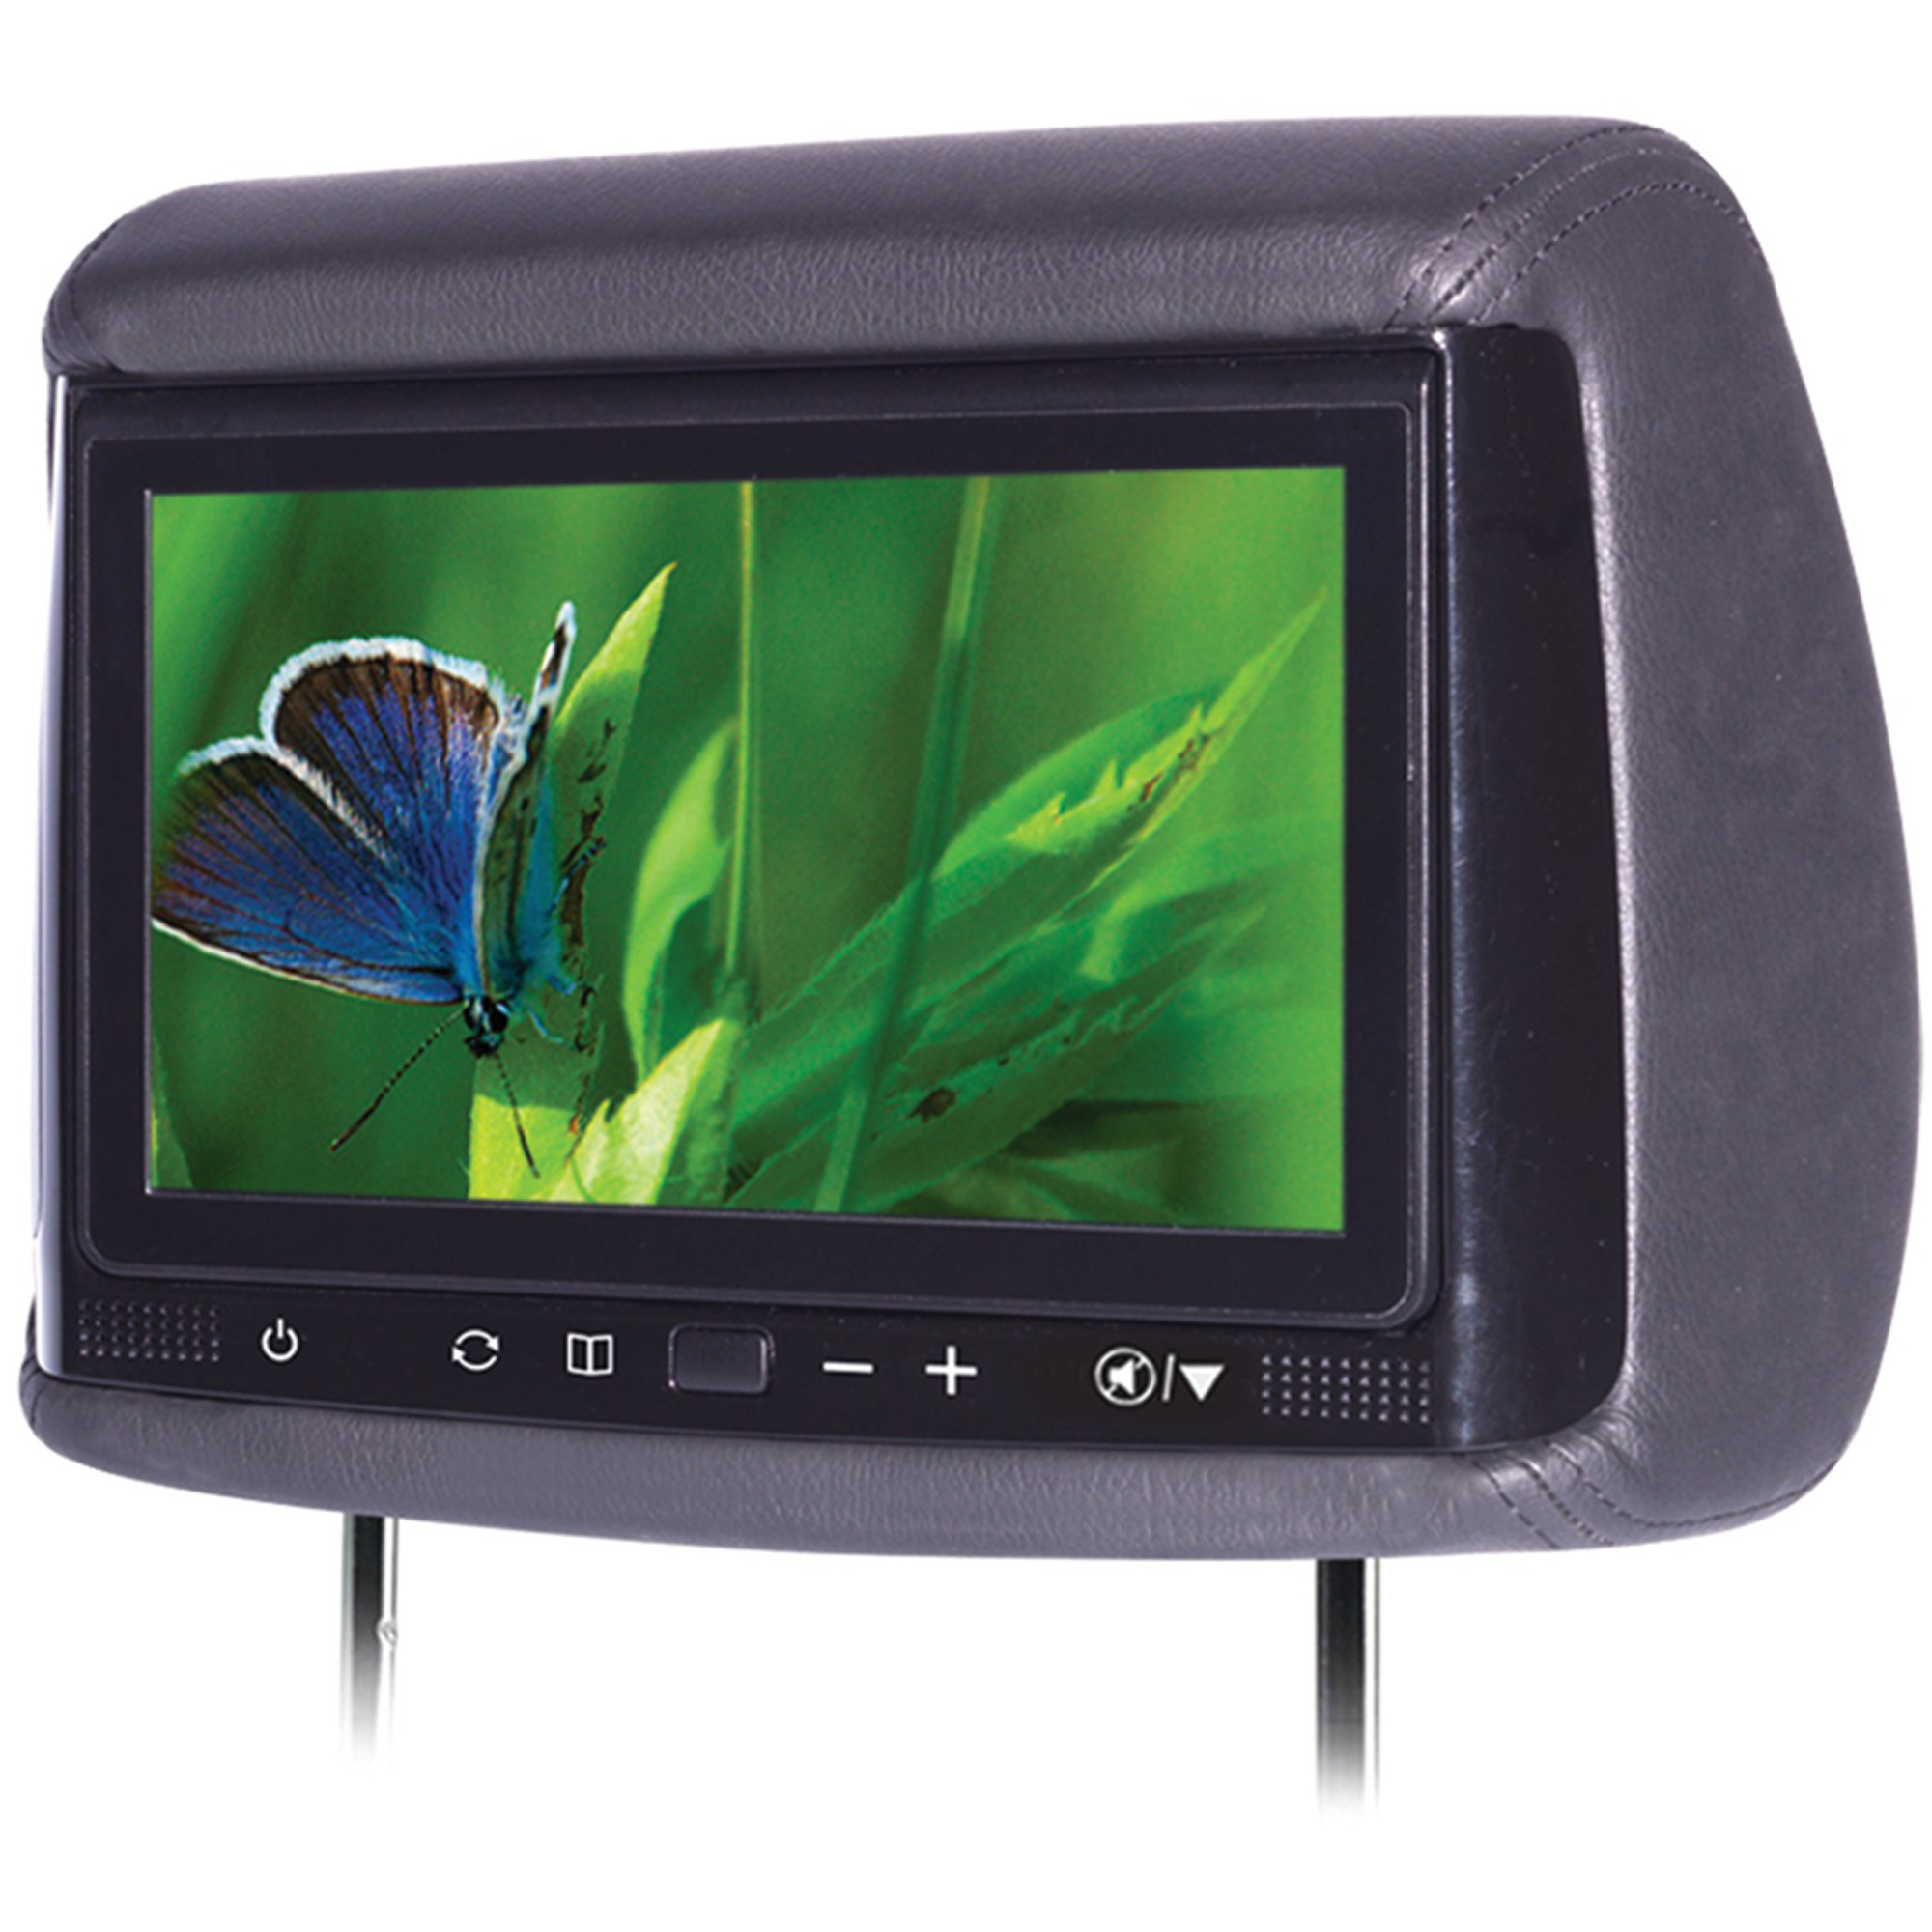 "Concept BSS-905 9"" Chameleon Big Screen LCD Headrest Monitor with 3 Color Covers"